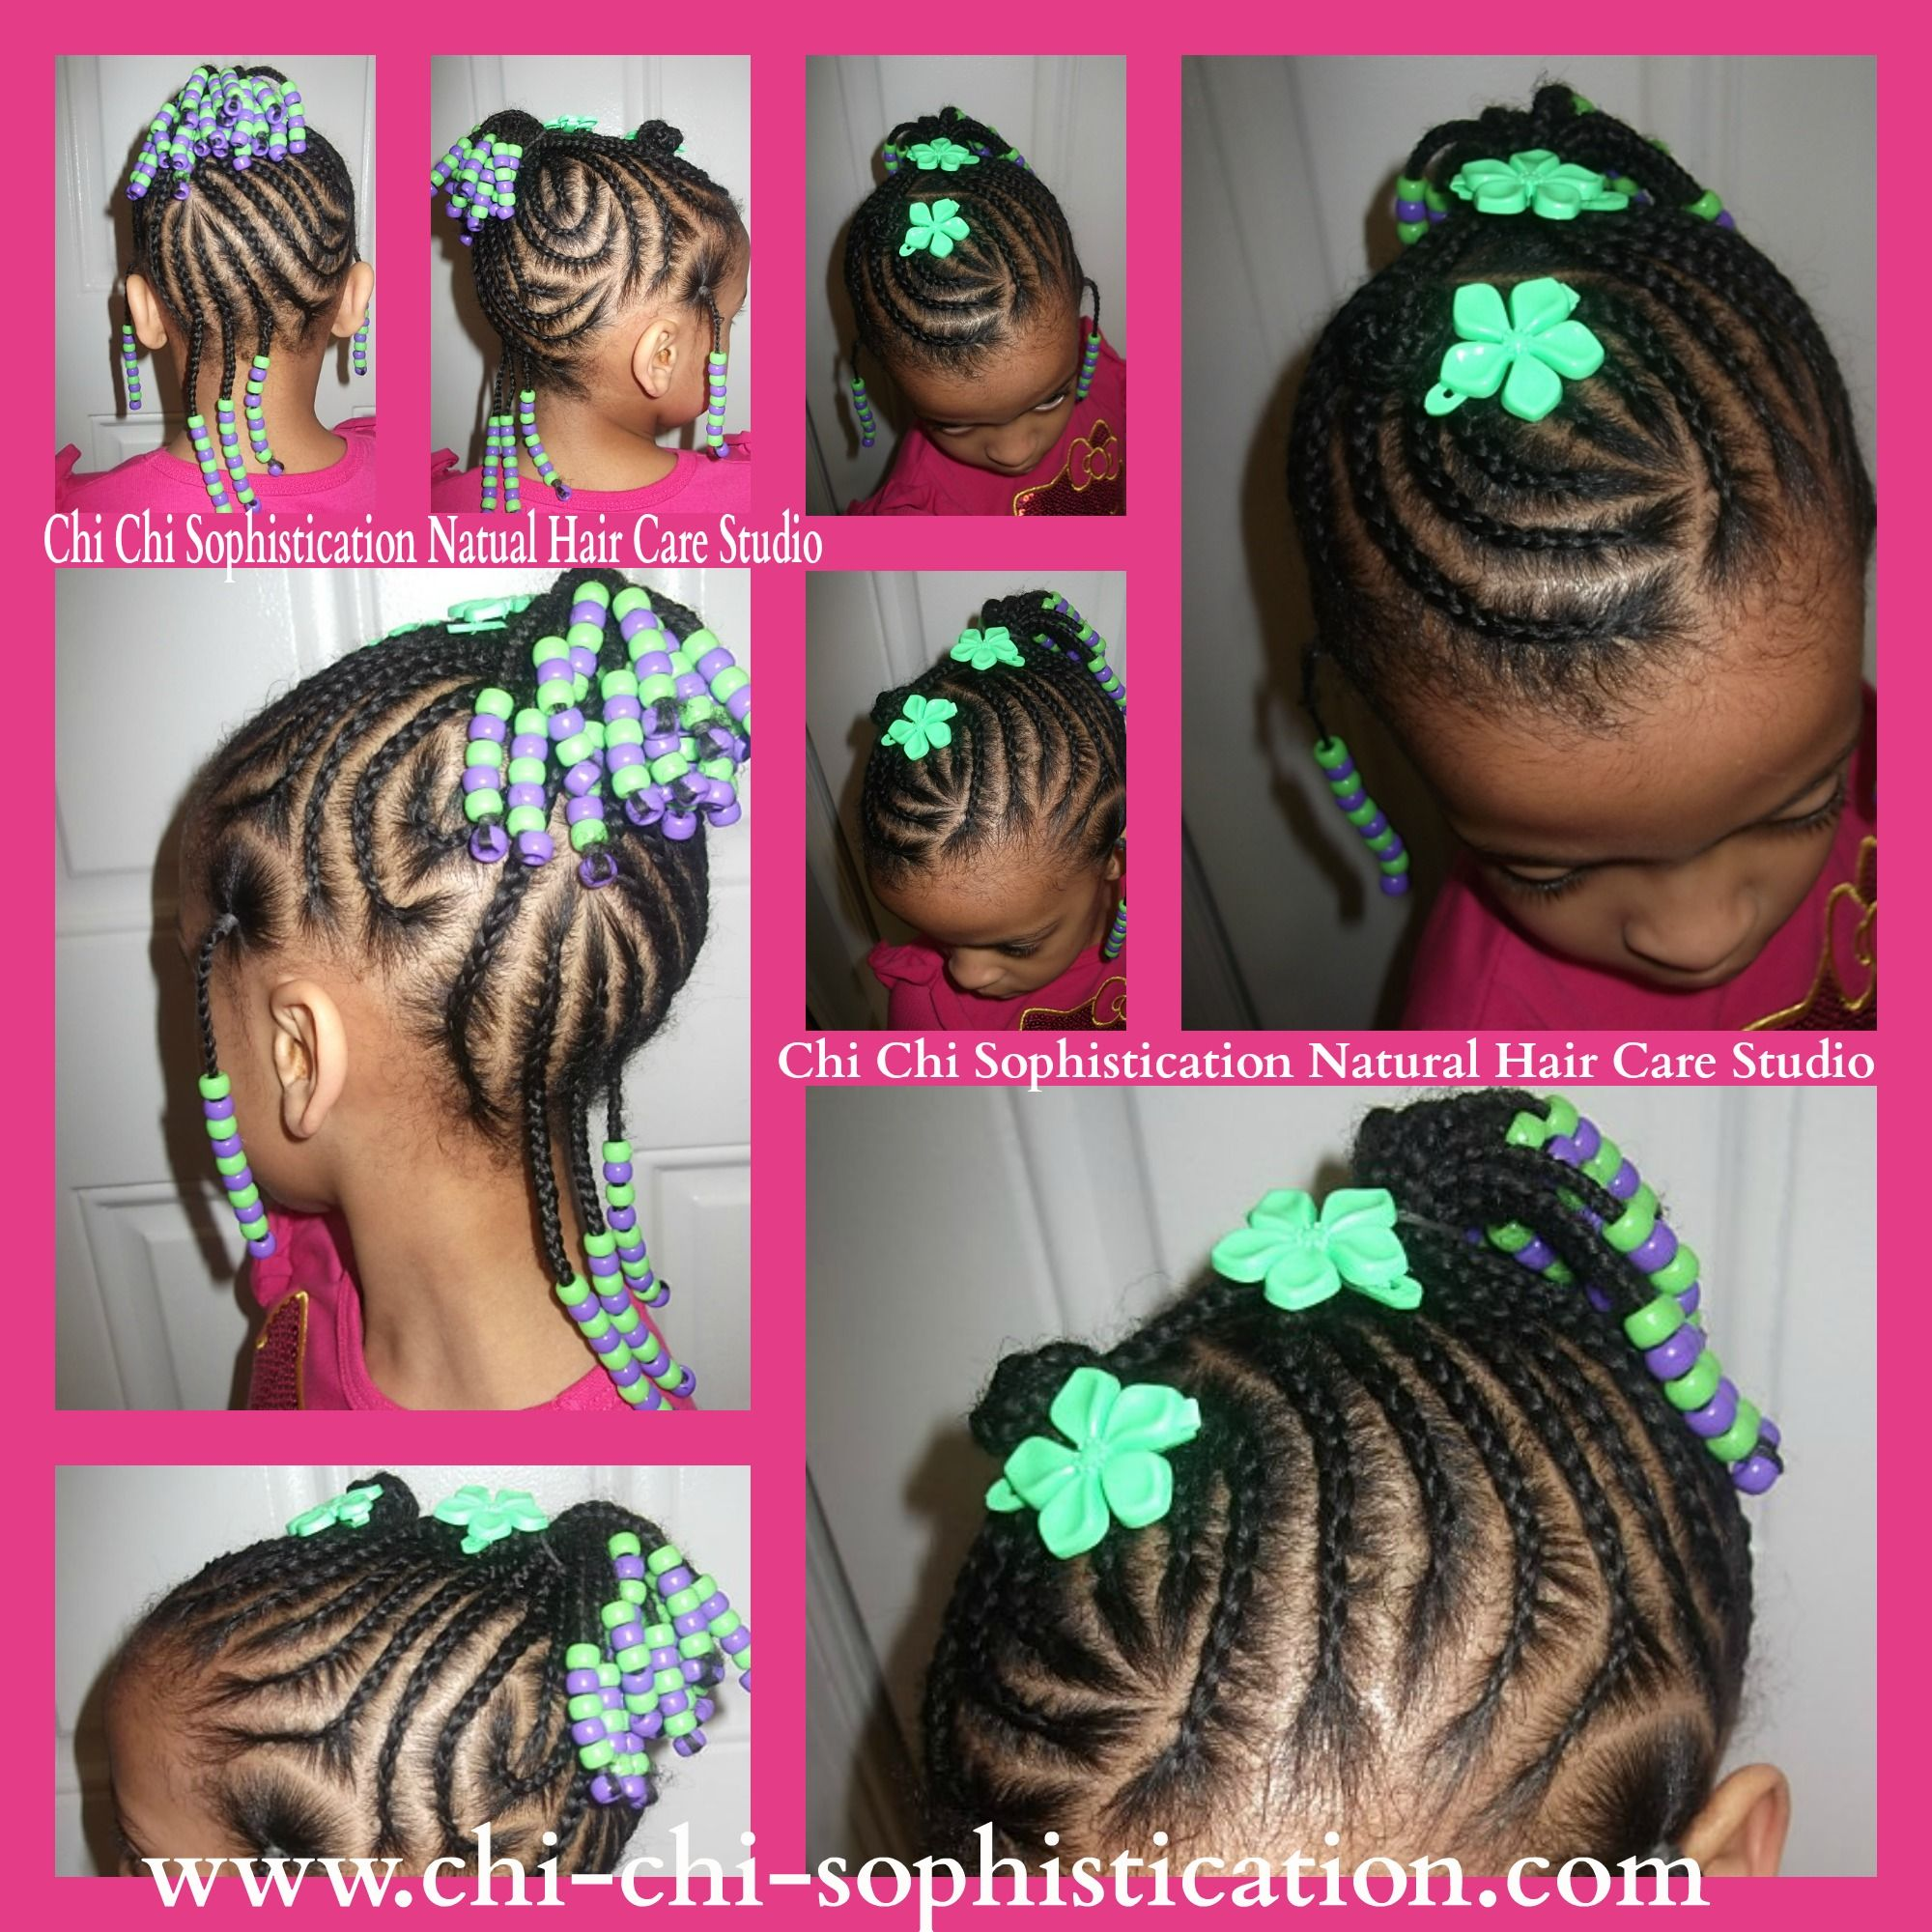 Pin By Chi Chi Sophistication Natural On Children Hair Styles By Chi Chi Sophistication Natural Hair Studio Kids Hairstyles Hair Styles Natural Hair Styles